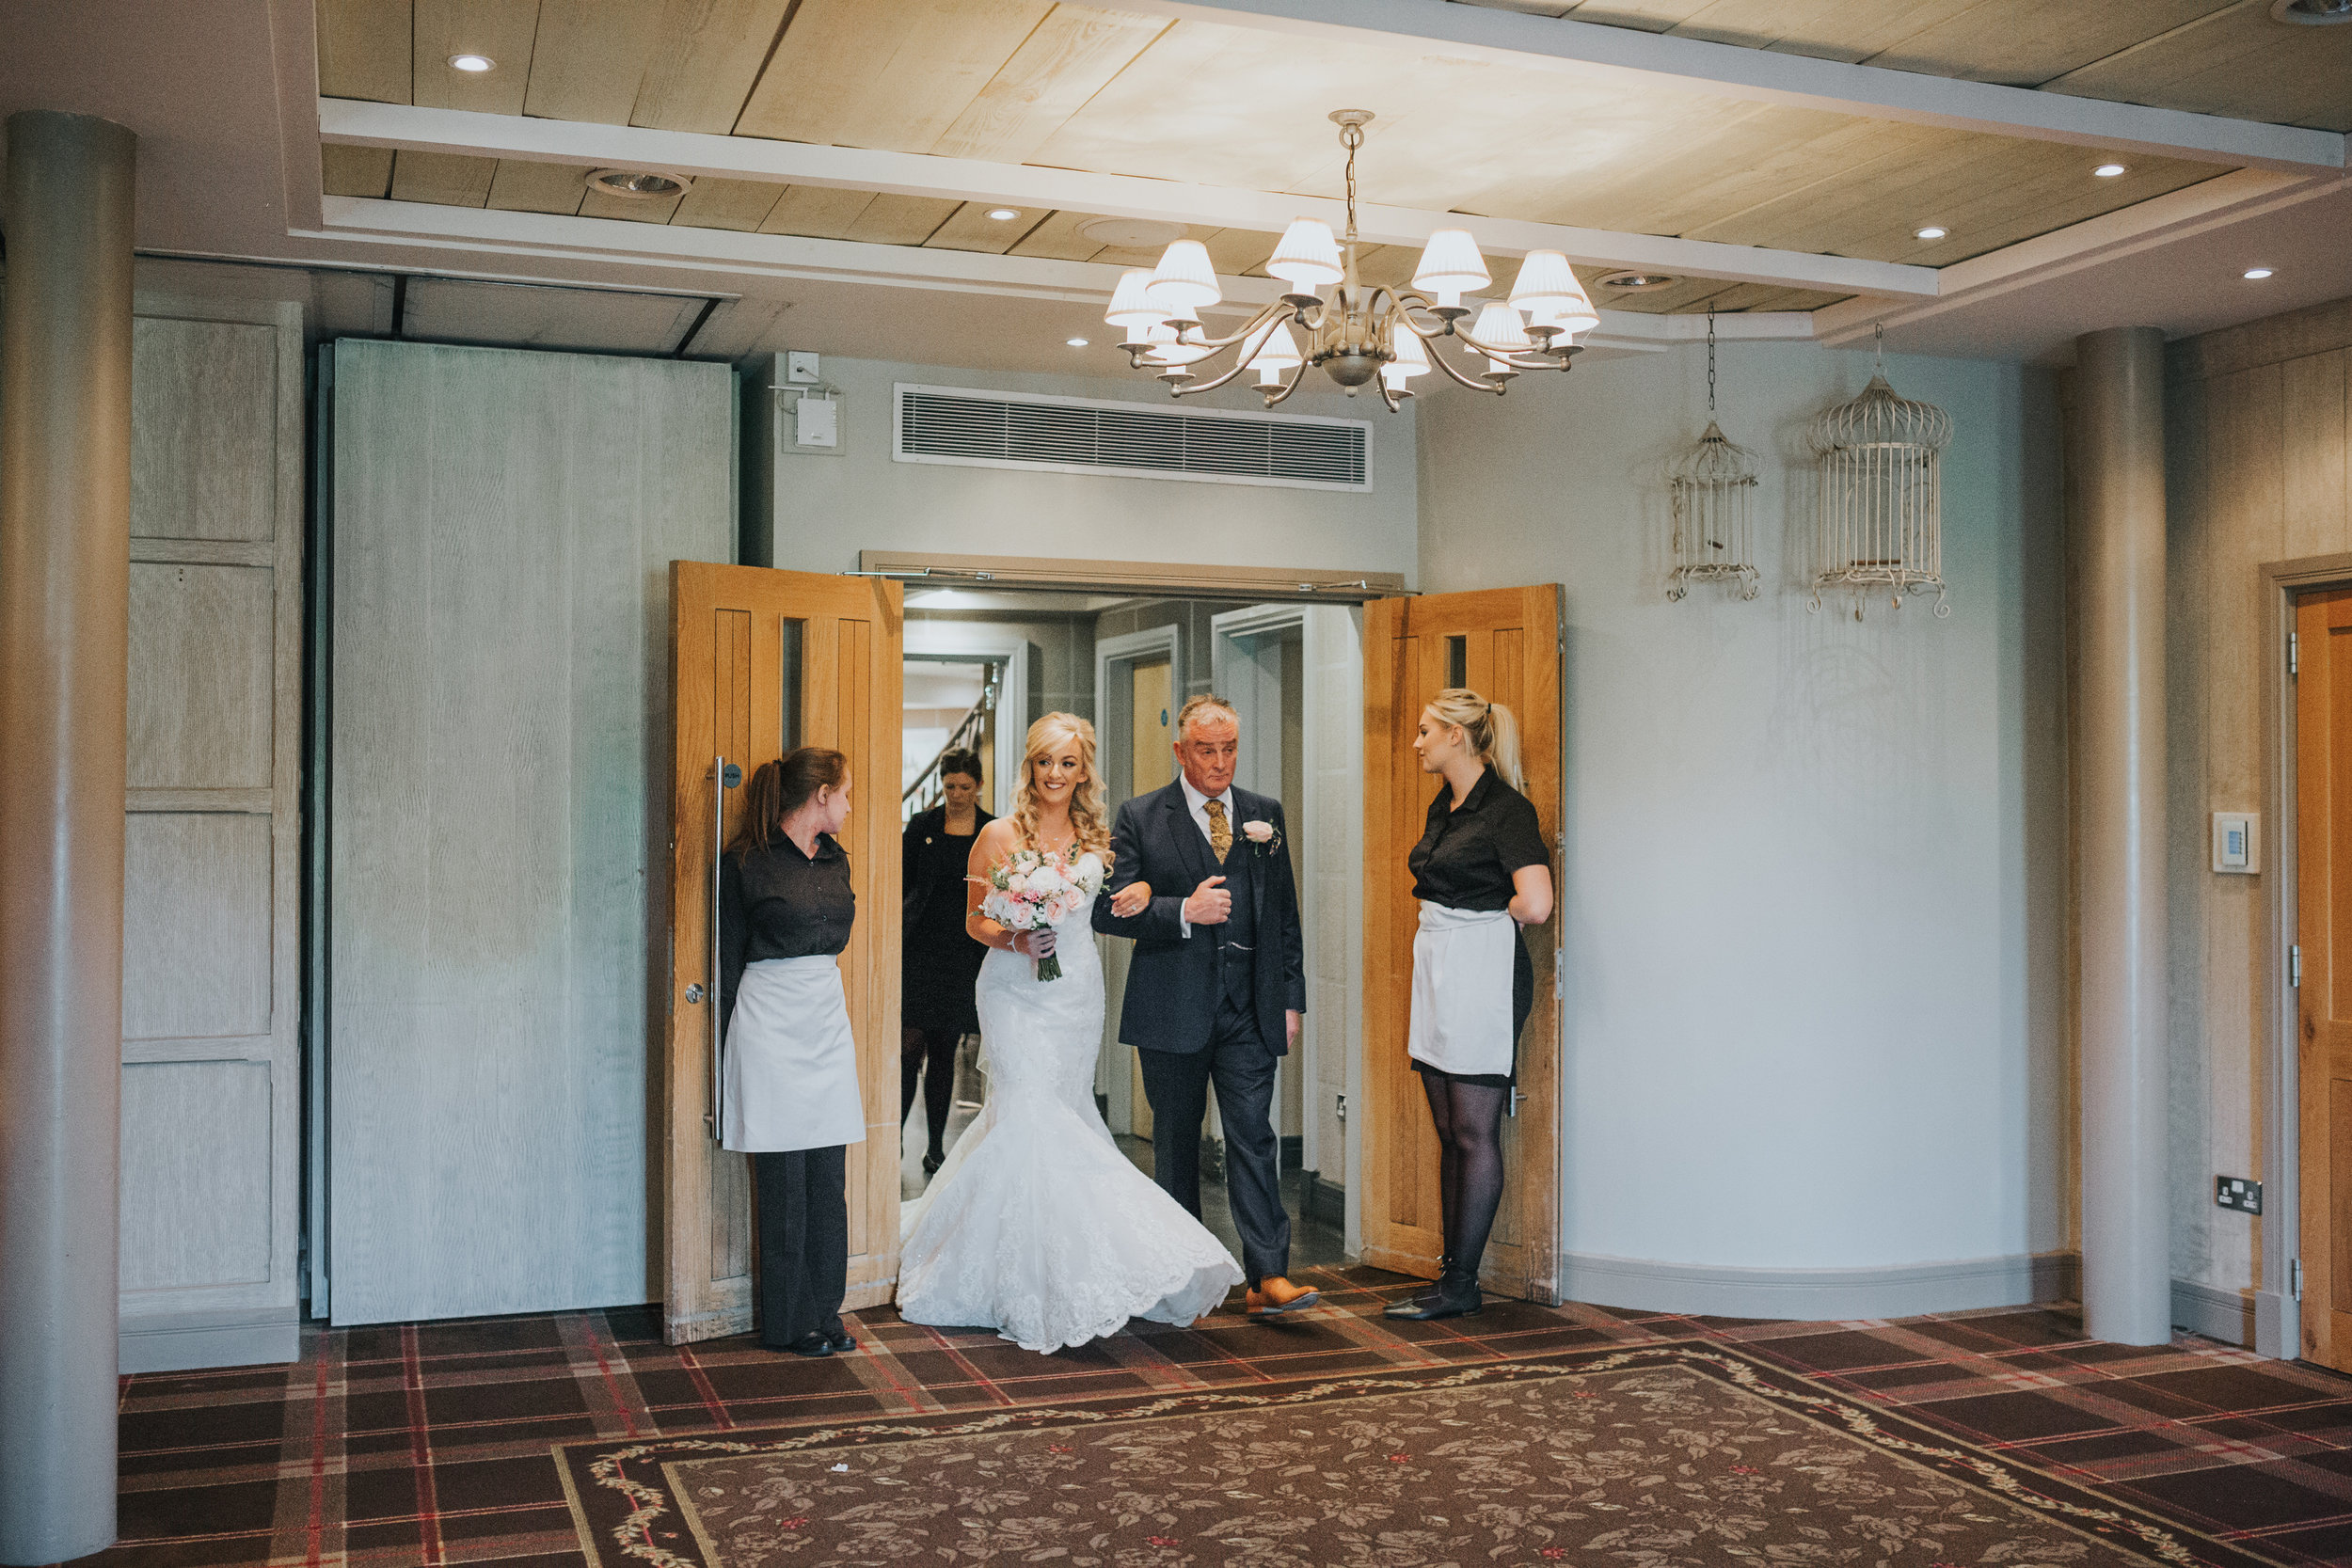 Bride and the father of the bride enter the ceremony room.